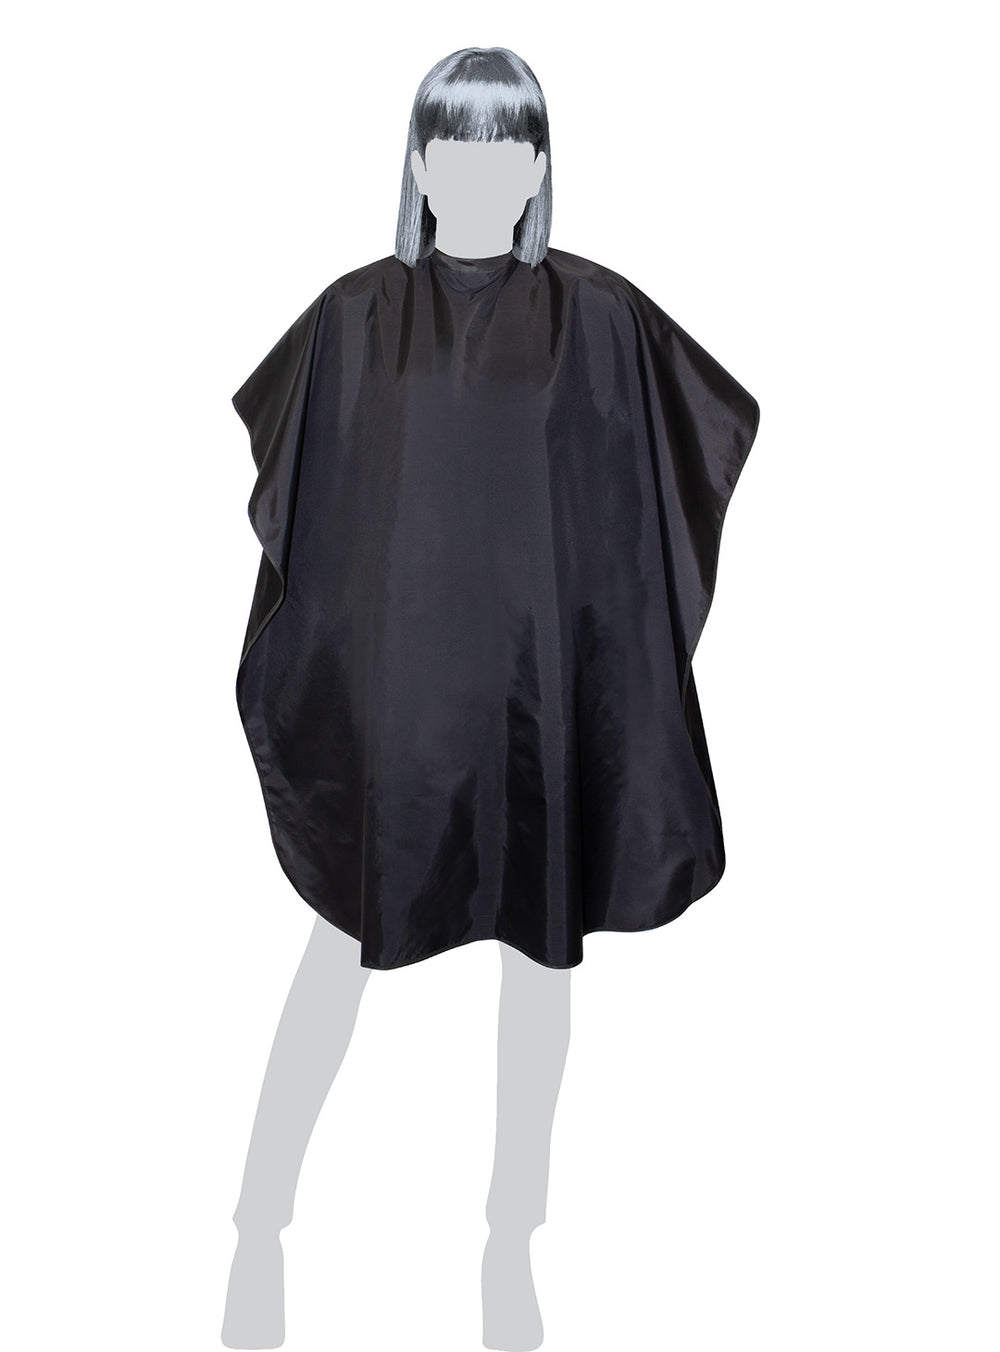 Fromm Pro Professional Salon Teflon® Coated Black Hairstyling Cape on mannequin